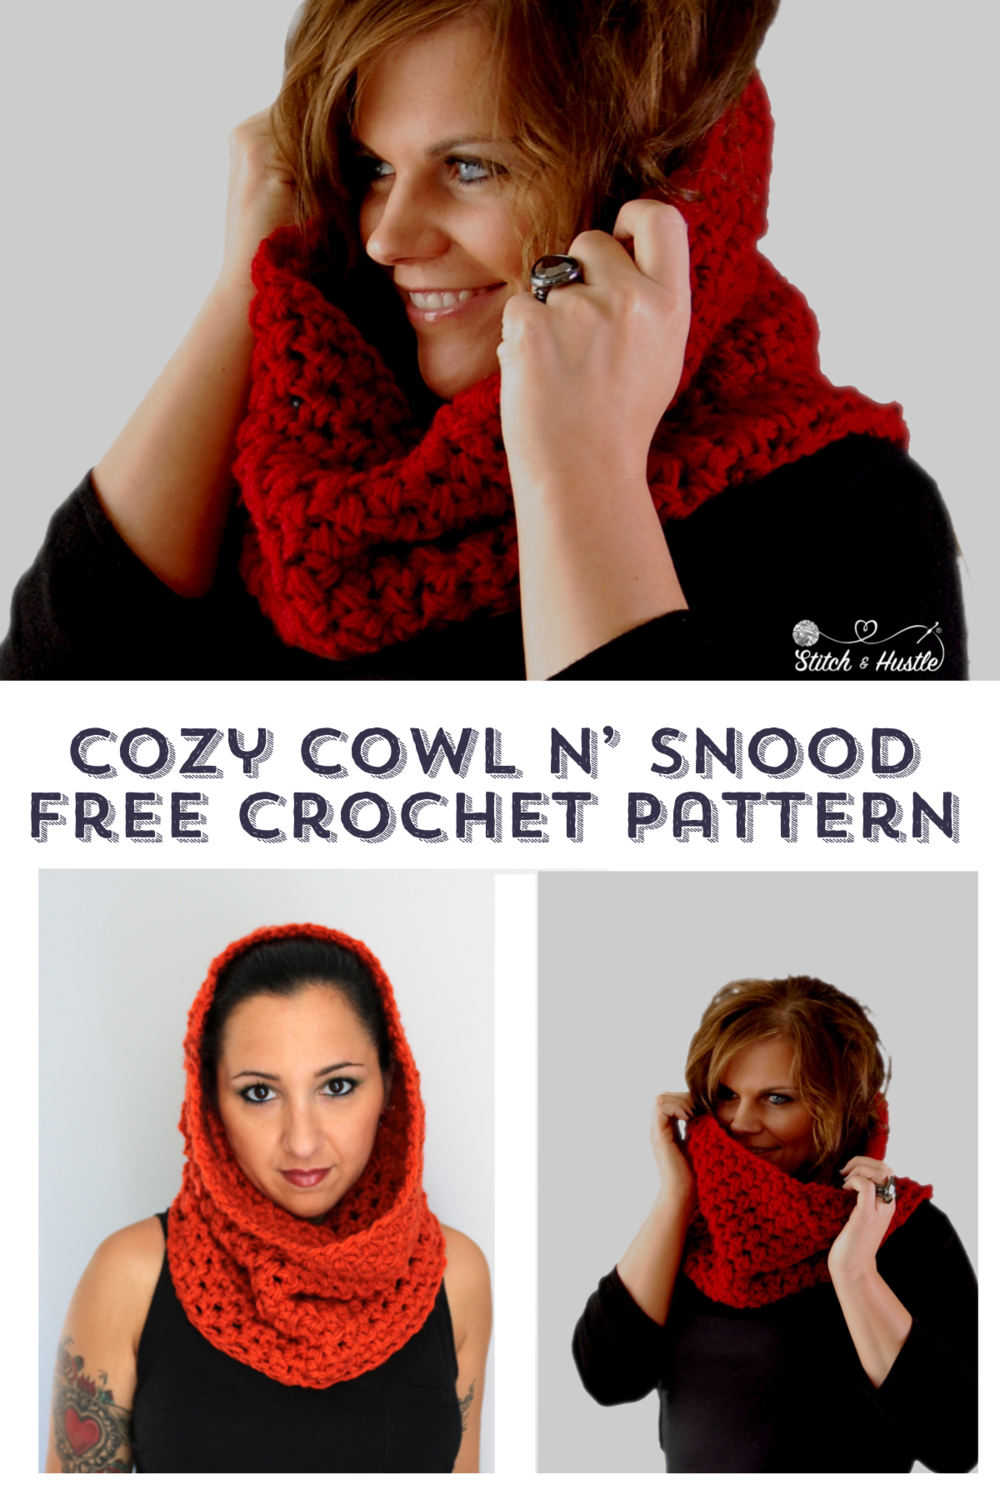 Cozy-cowl-snood-free-crochet-pattern.png